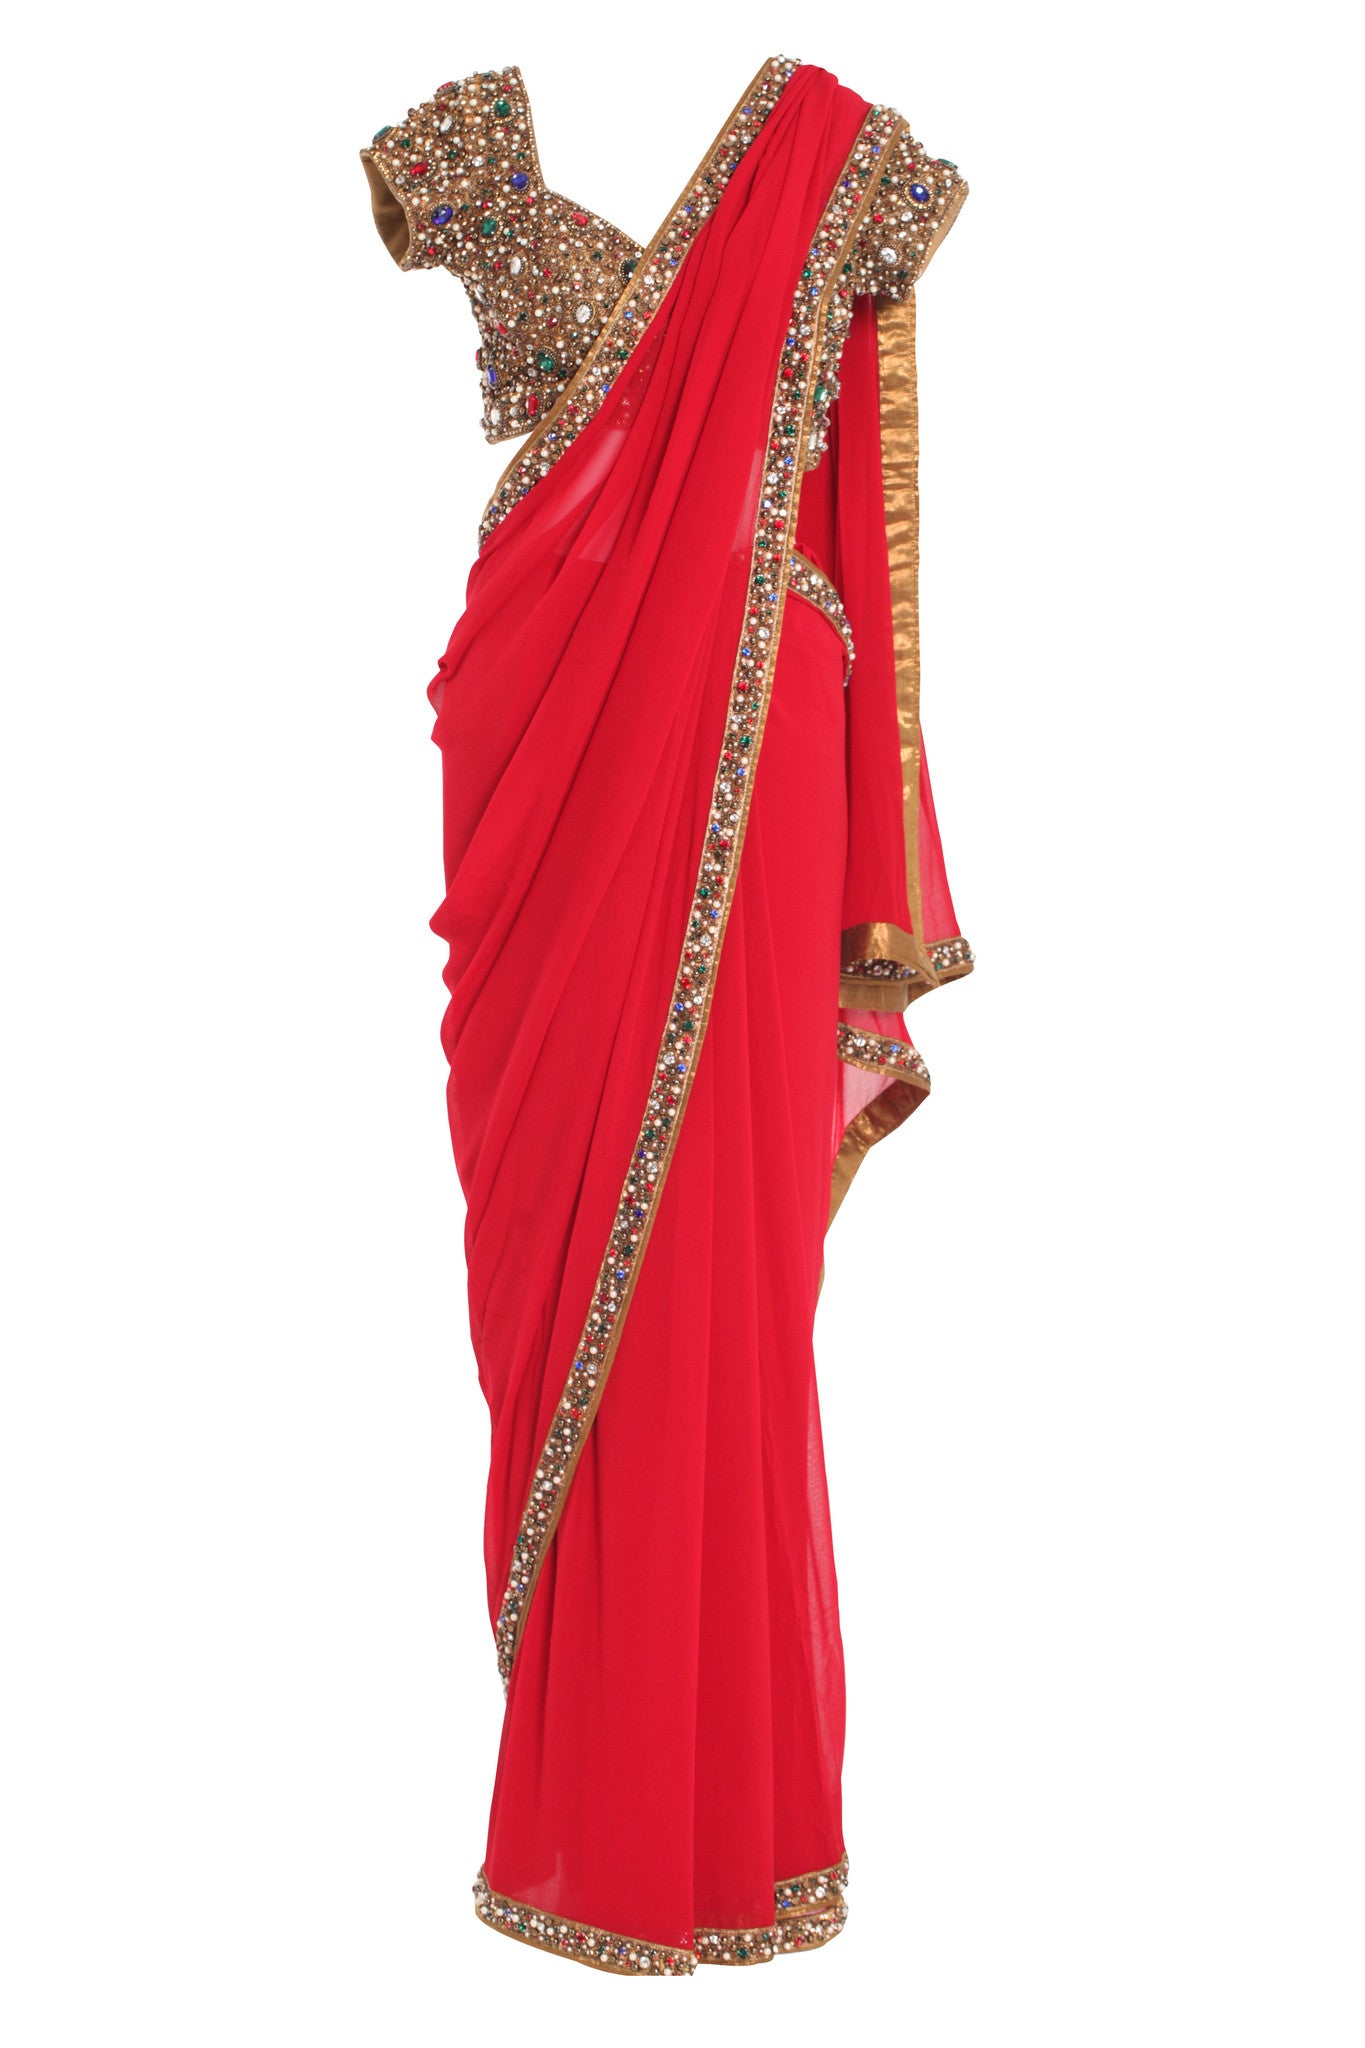 Red Saree & Jewelled Blouse | VIVA-LUXE